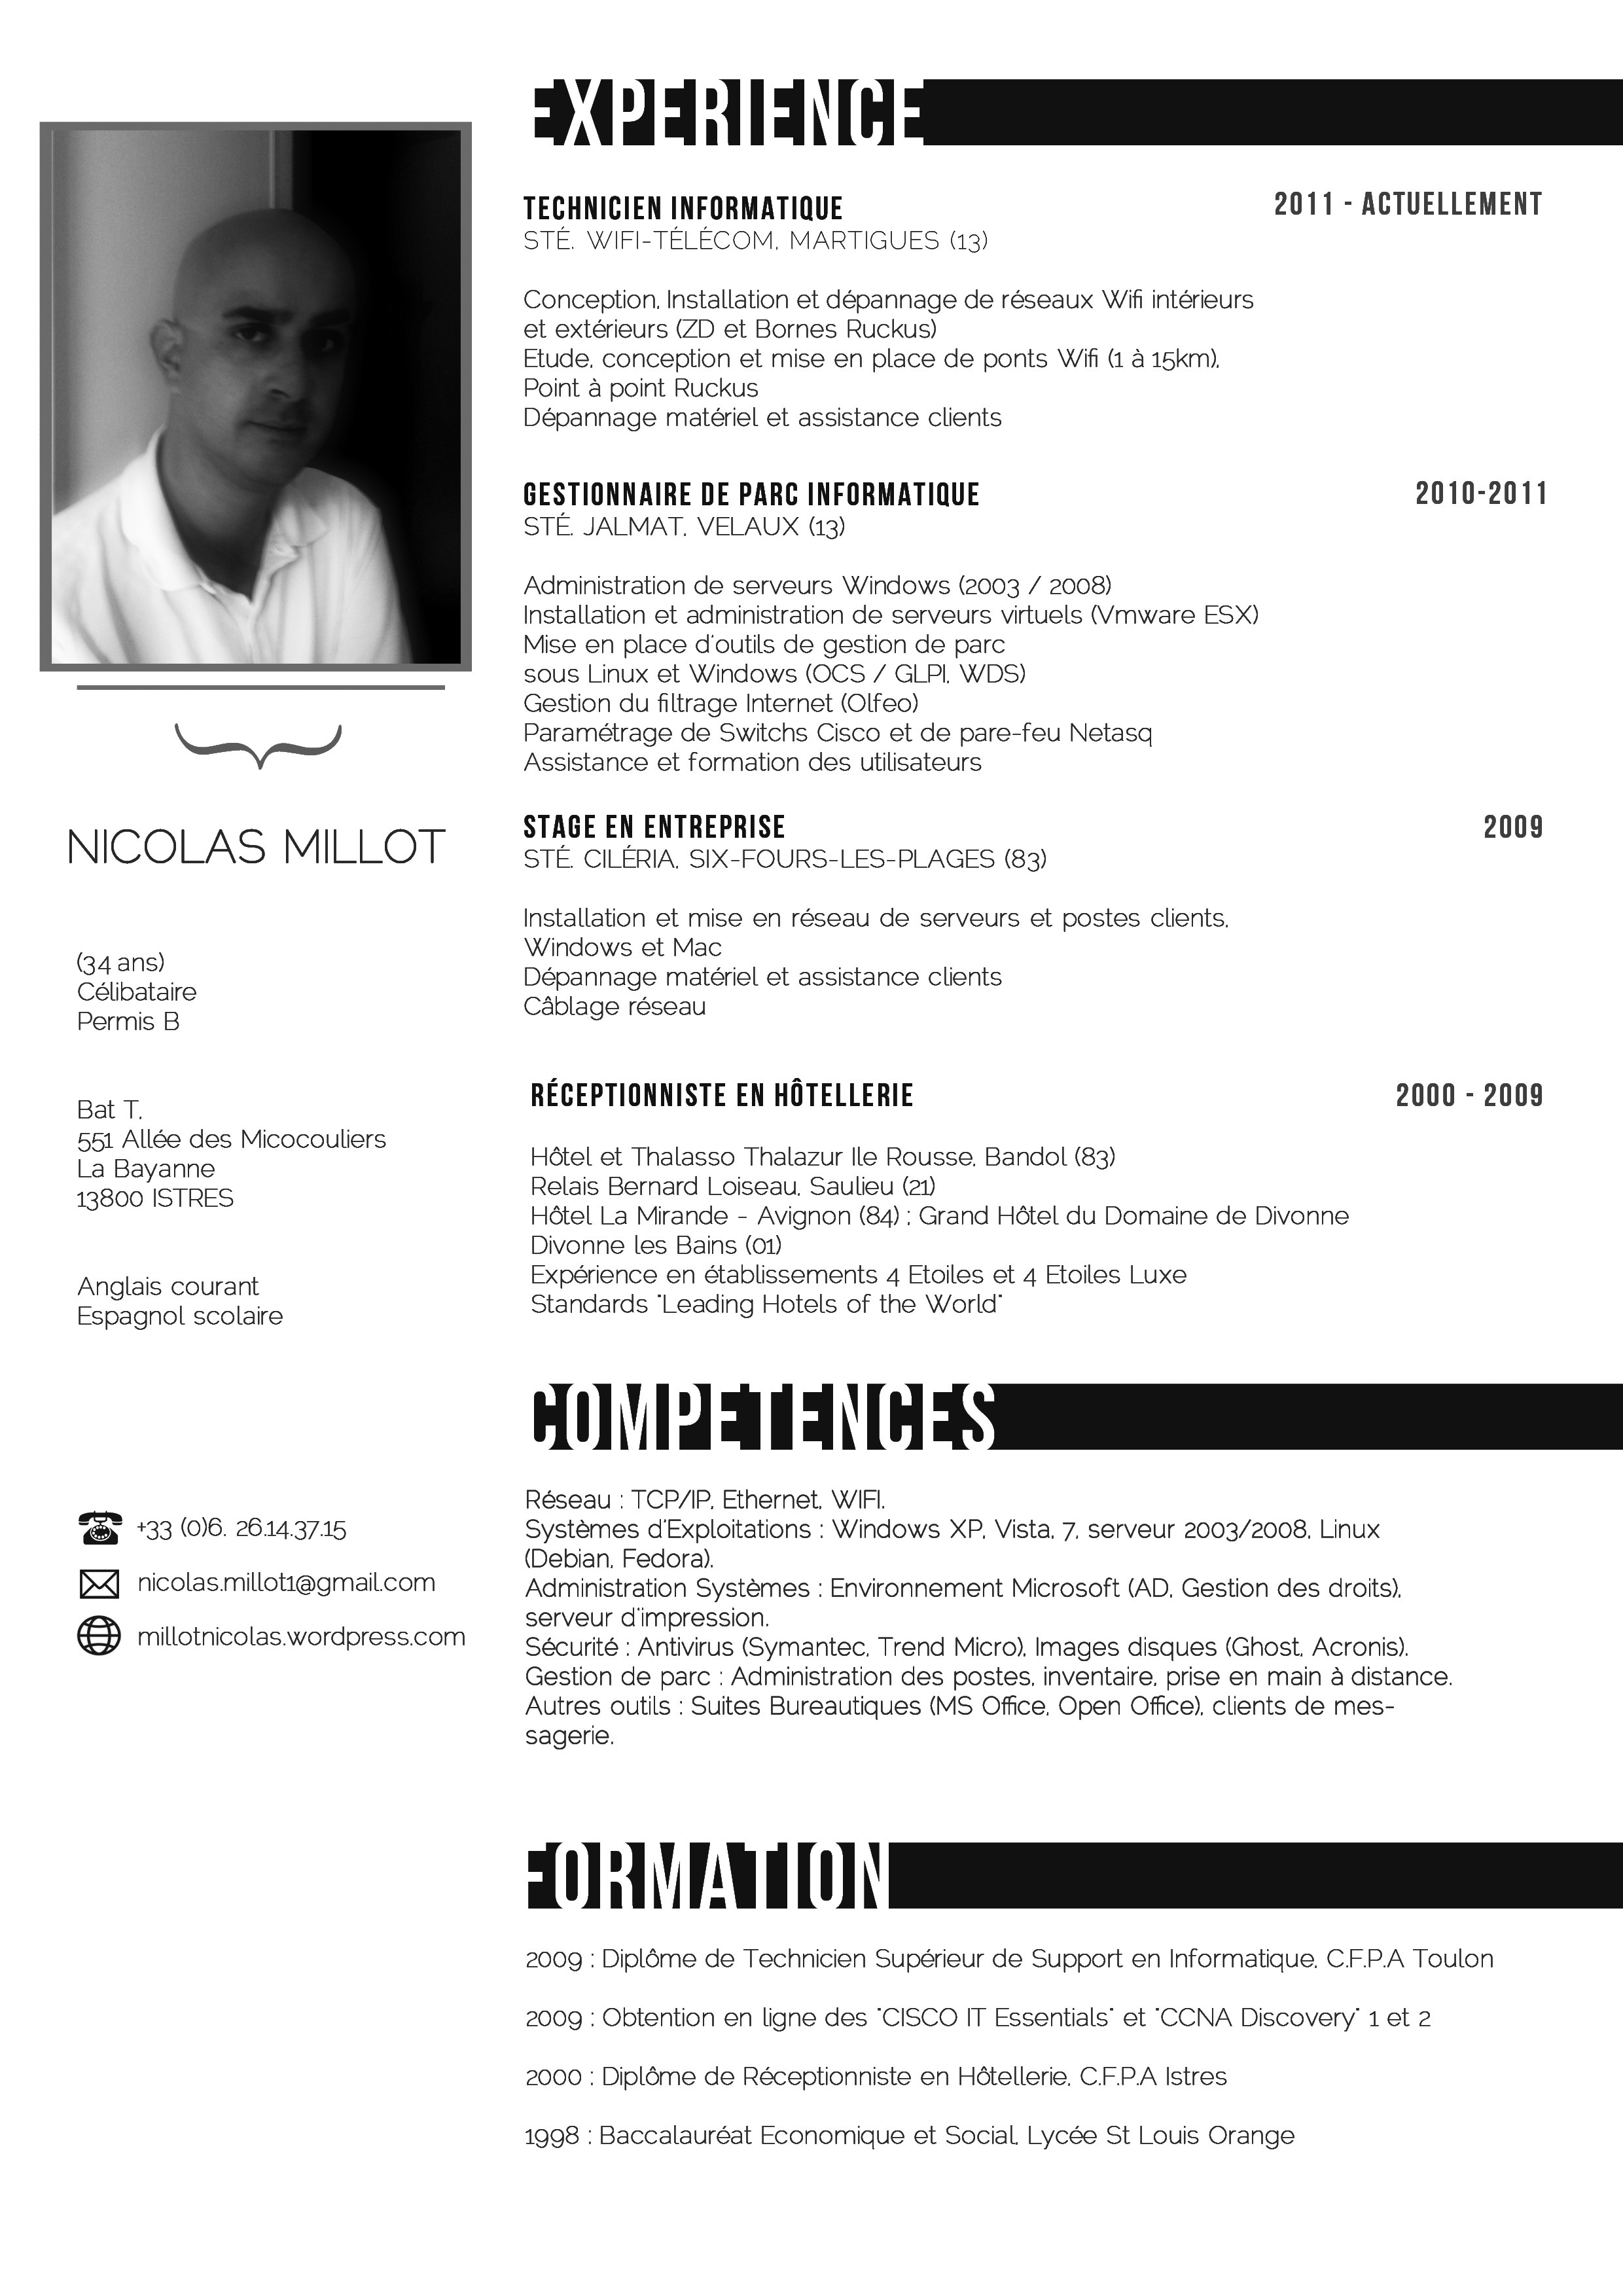 cv template simple resume builder for job cv template simple simple cv template simplified layout clear and concise cv template en cours